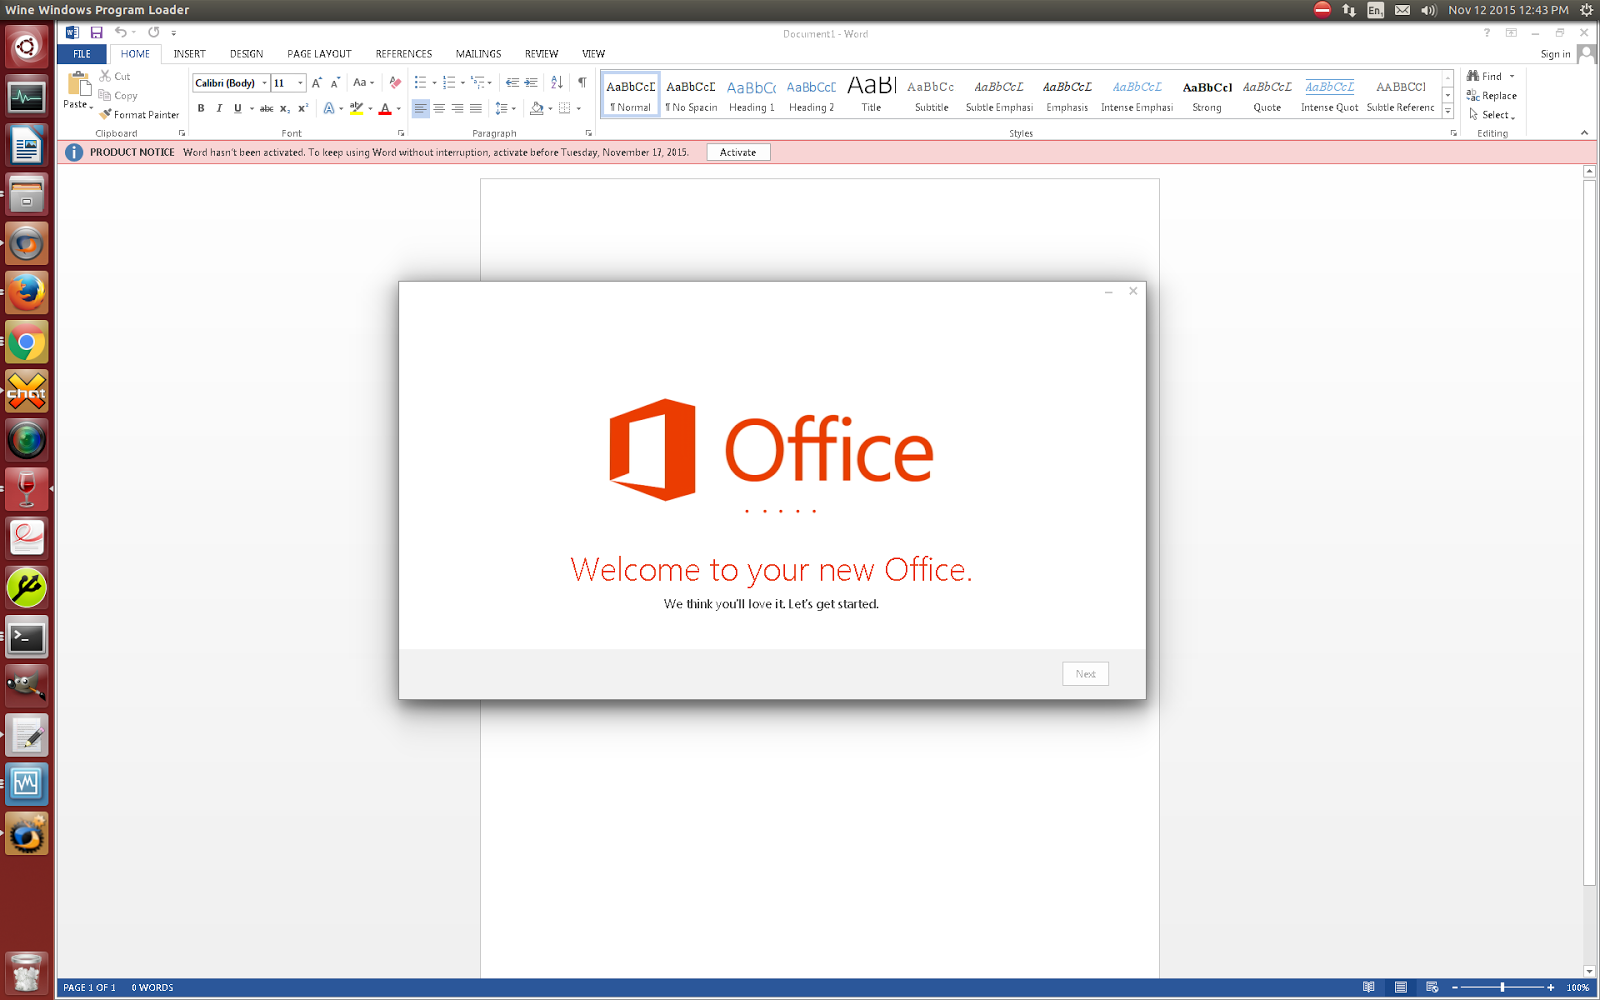 The pervasive Microsoft Office productivity suite is a must-have in today's fast-paced world. Find cutting-edge electronics solutions for businesses, consumers and the home worth the splurge, yet still affordable, with Microsoft Store deals.